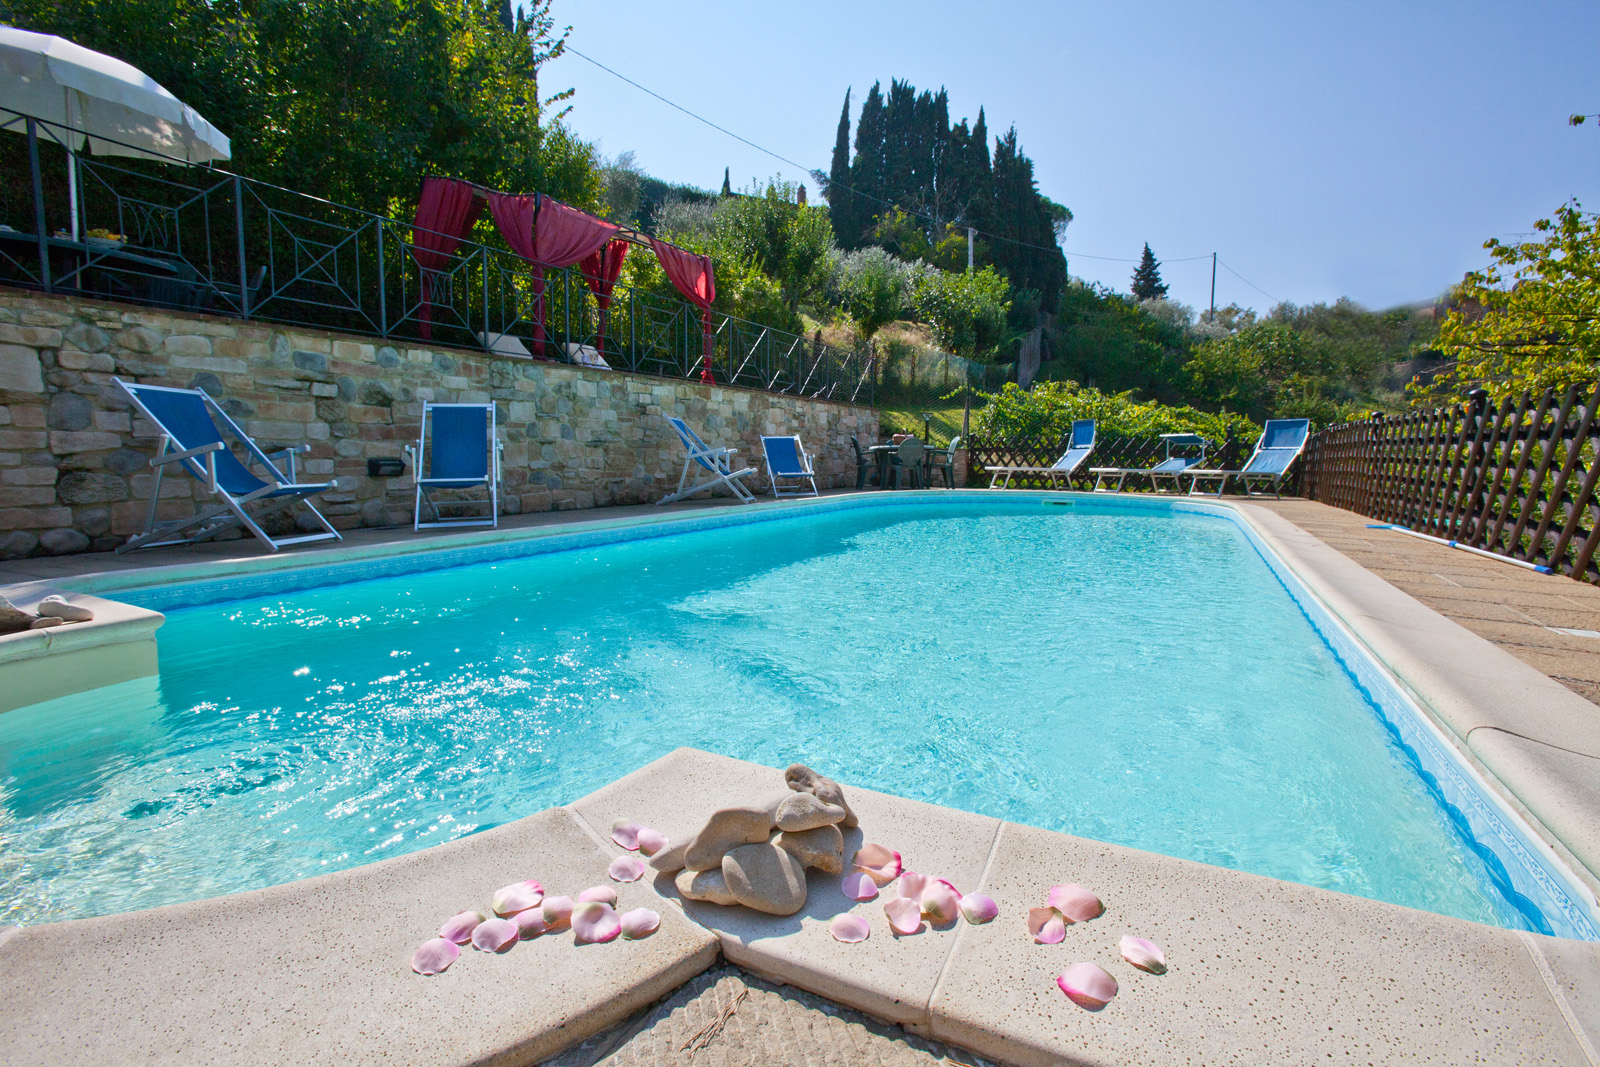 Villa Nuba vacation rentals in  Perugia - Perugino Charming apartment